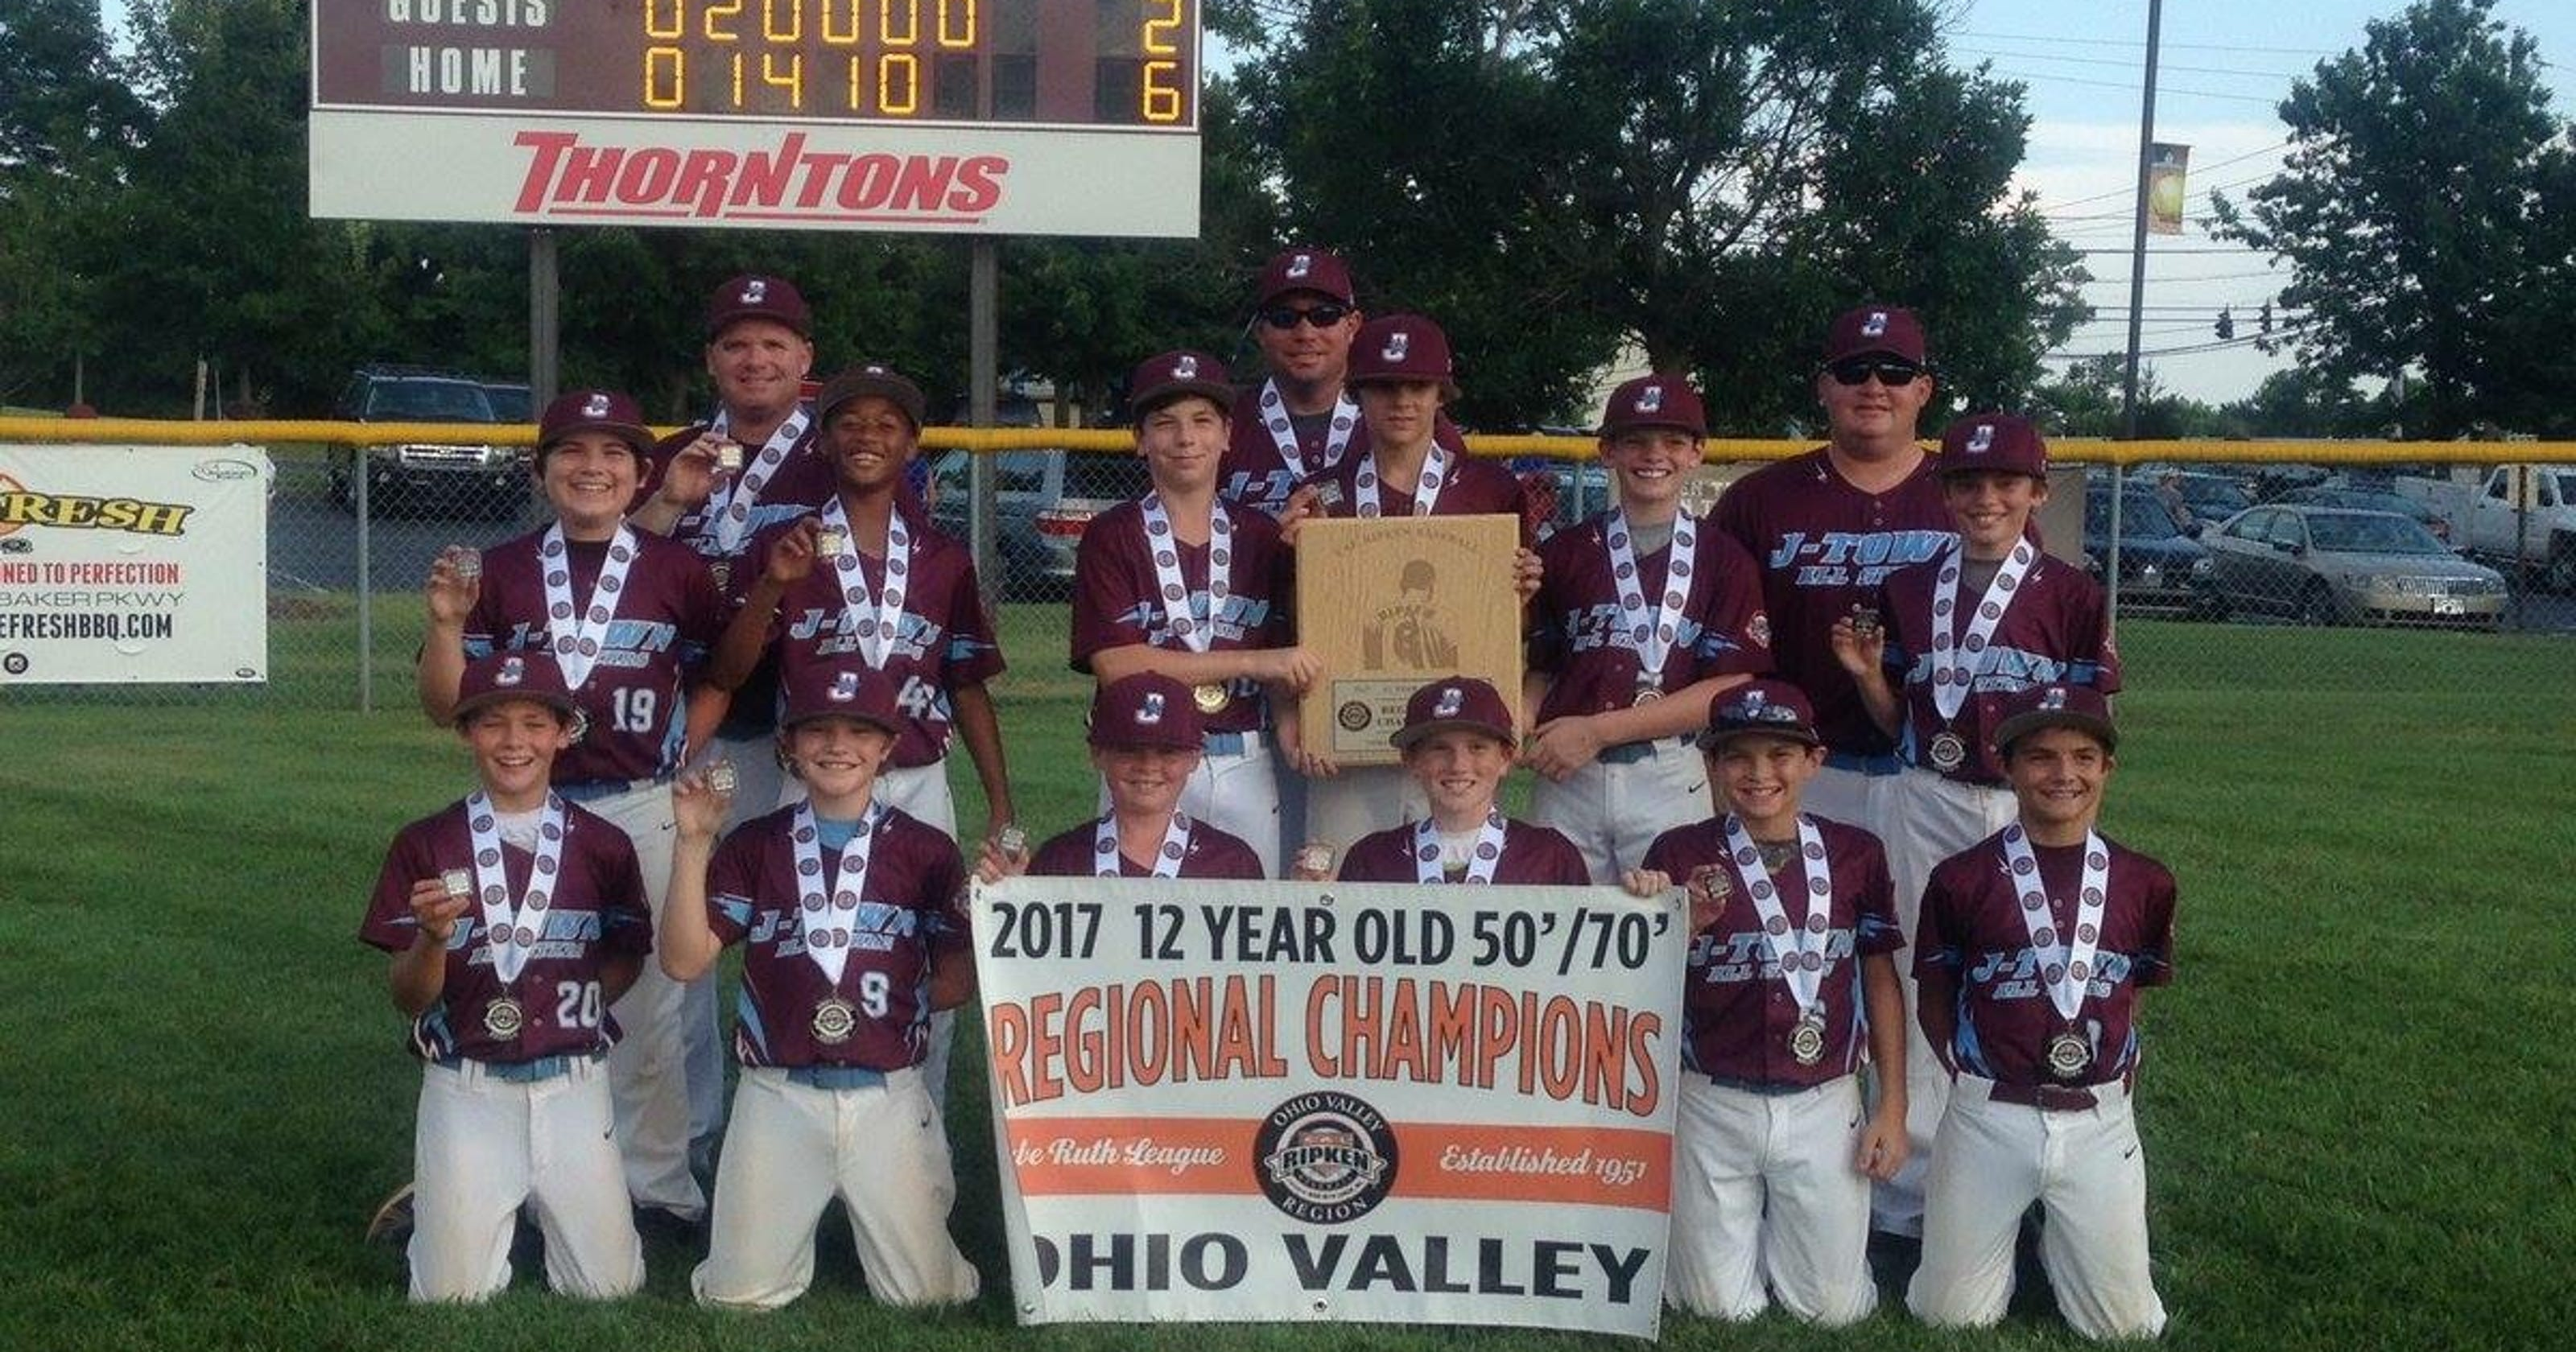 Jeffersontown sends 3 youth teams to Little League World Series